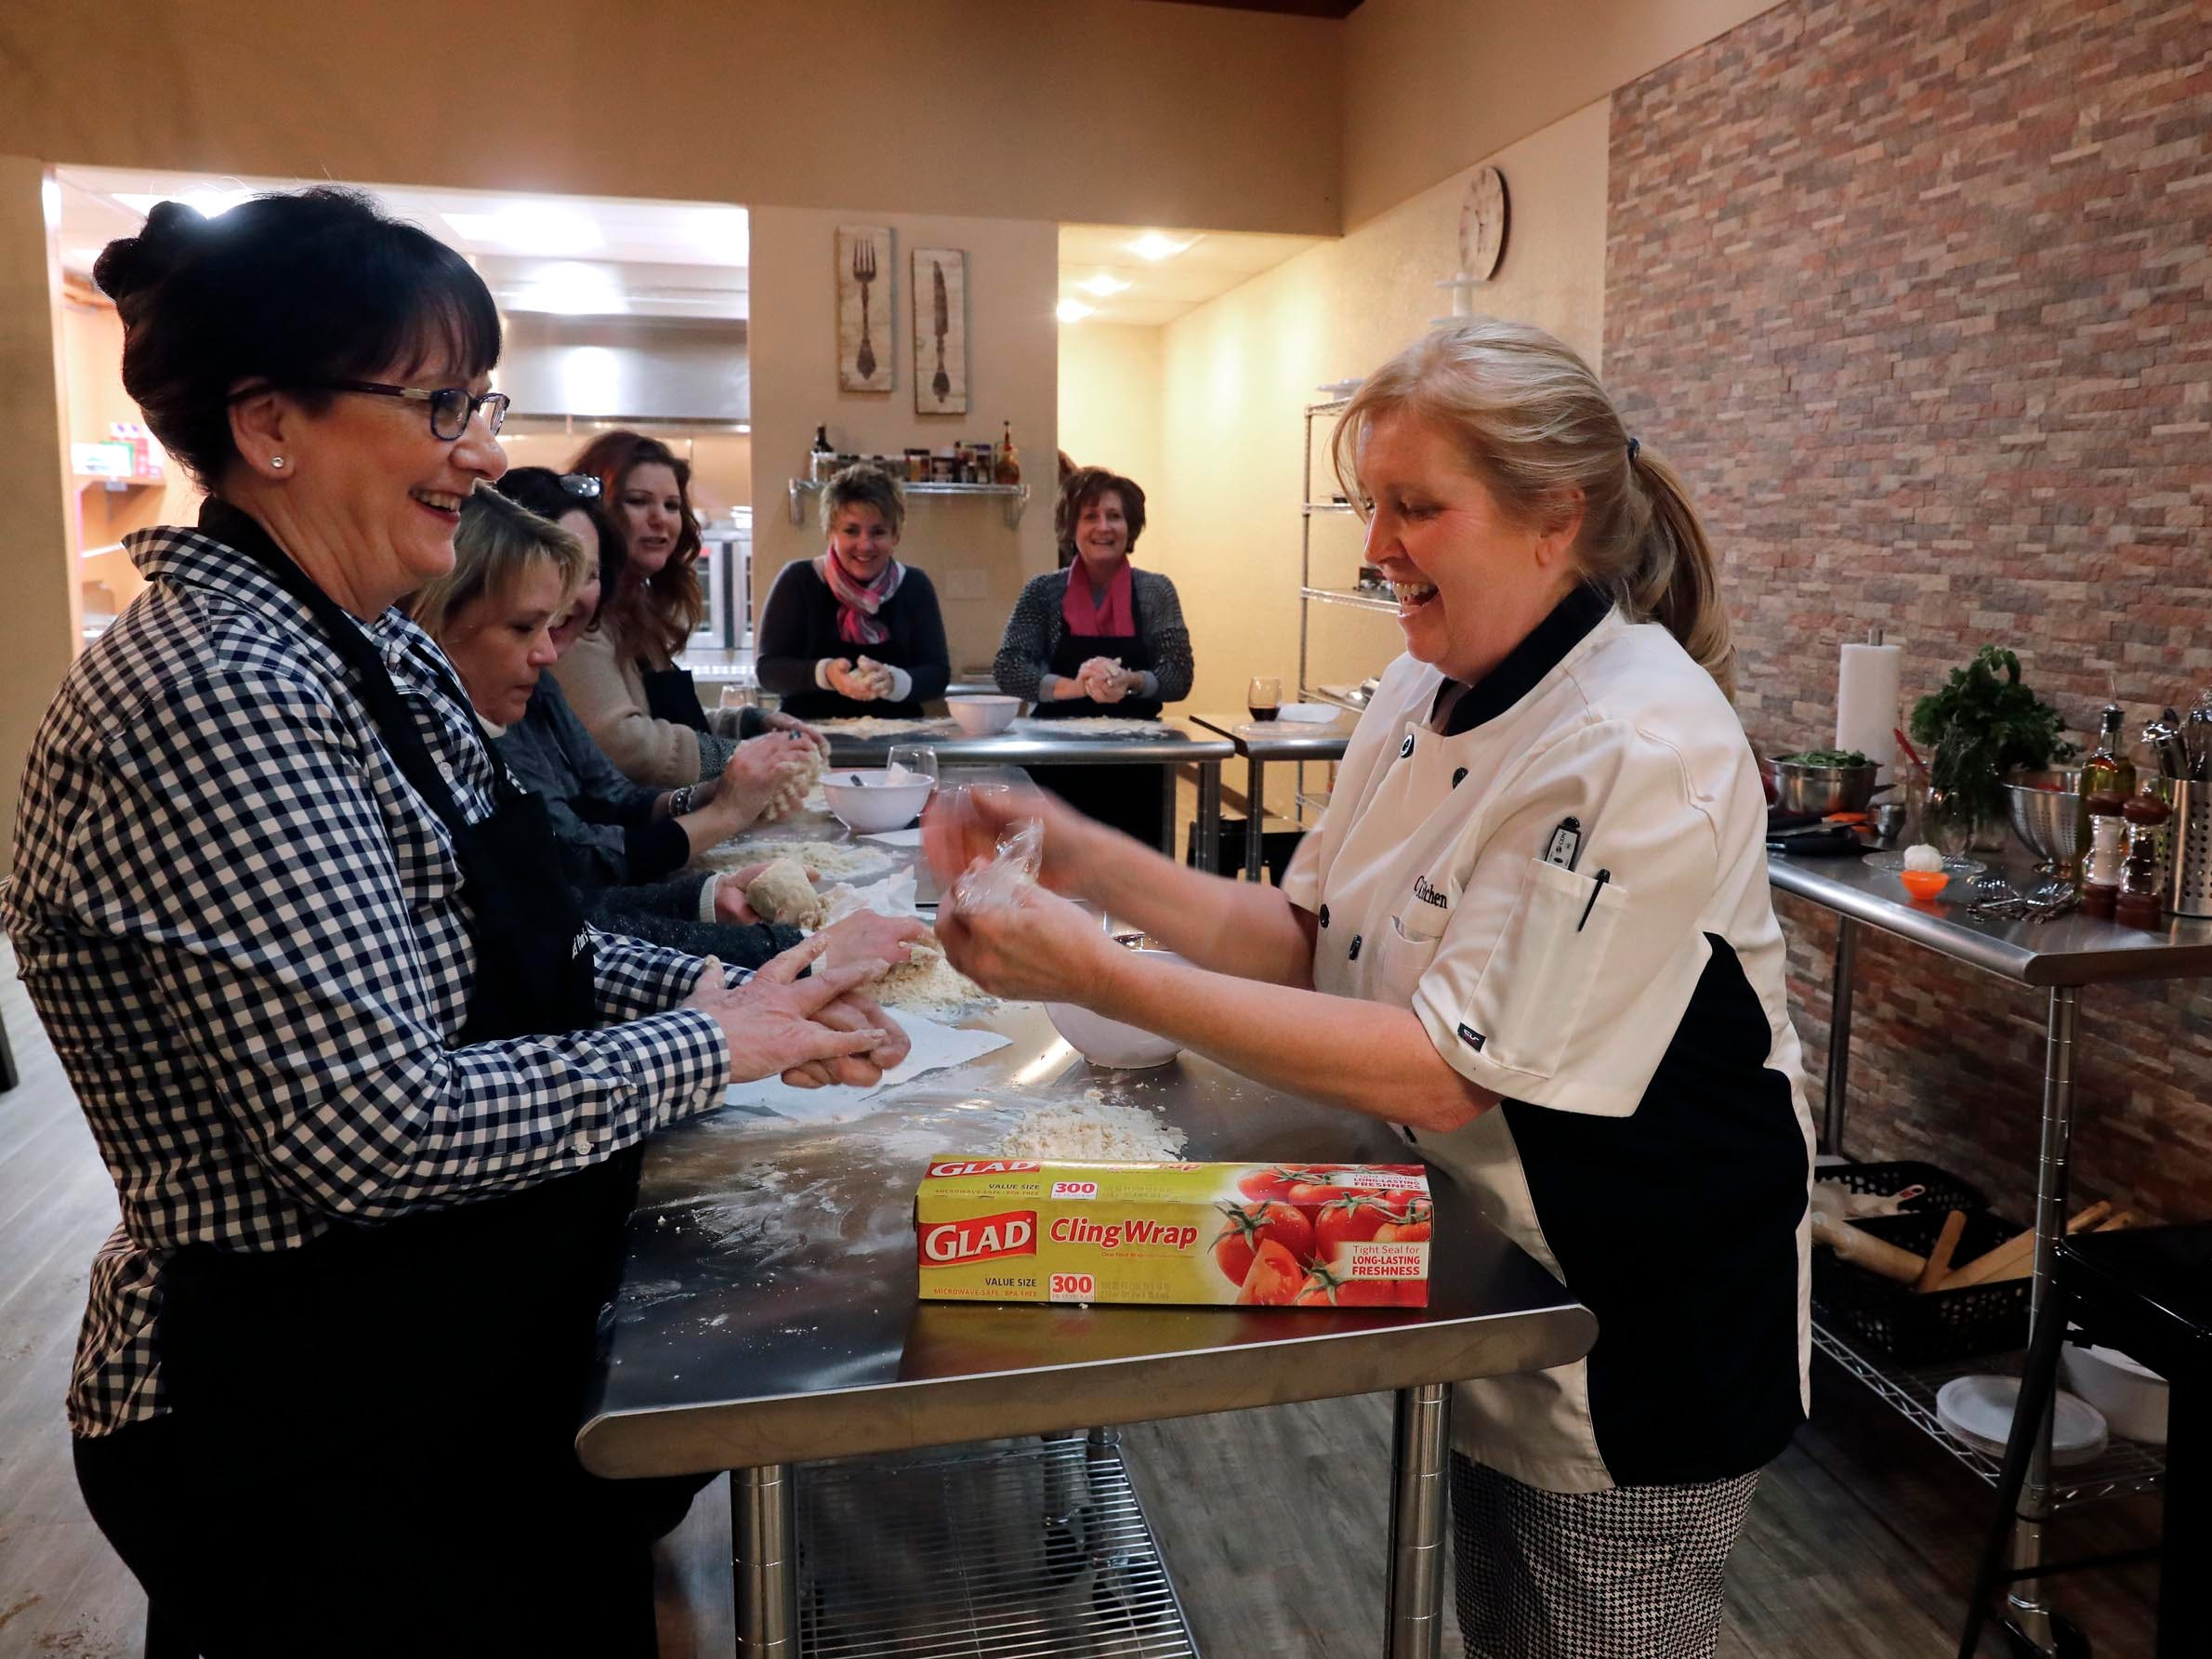 Pam Dennis prepares to wrap the dough created by student Marty Gibson.